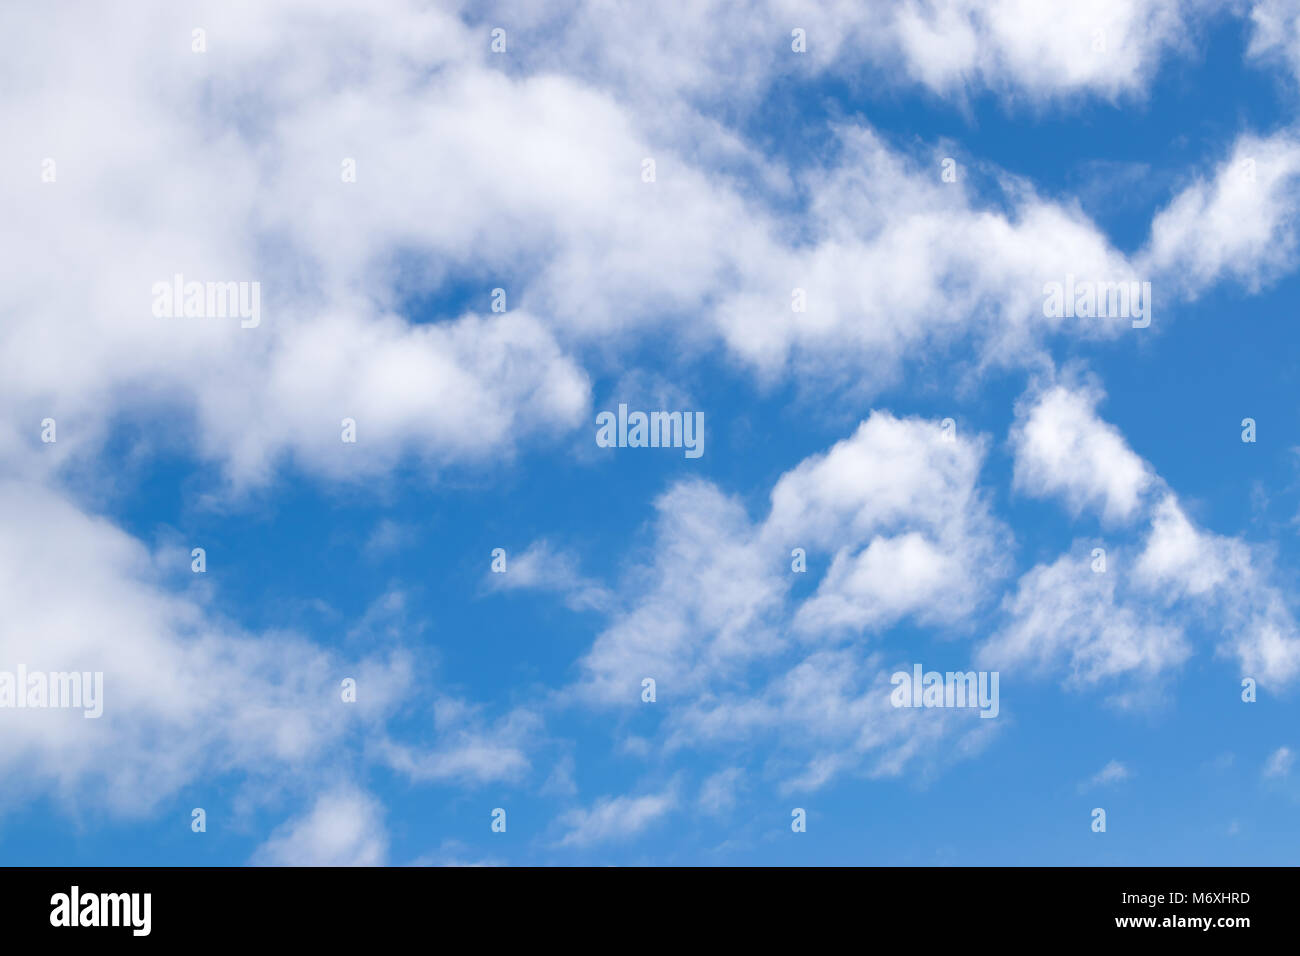 Fluffy clouds against a blue sky - Stock Image